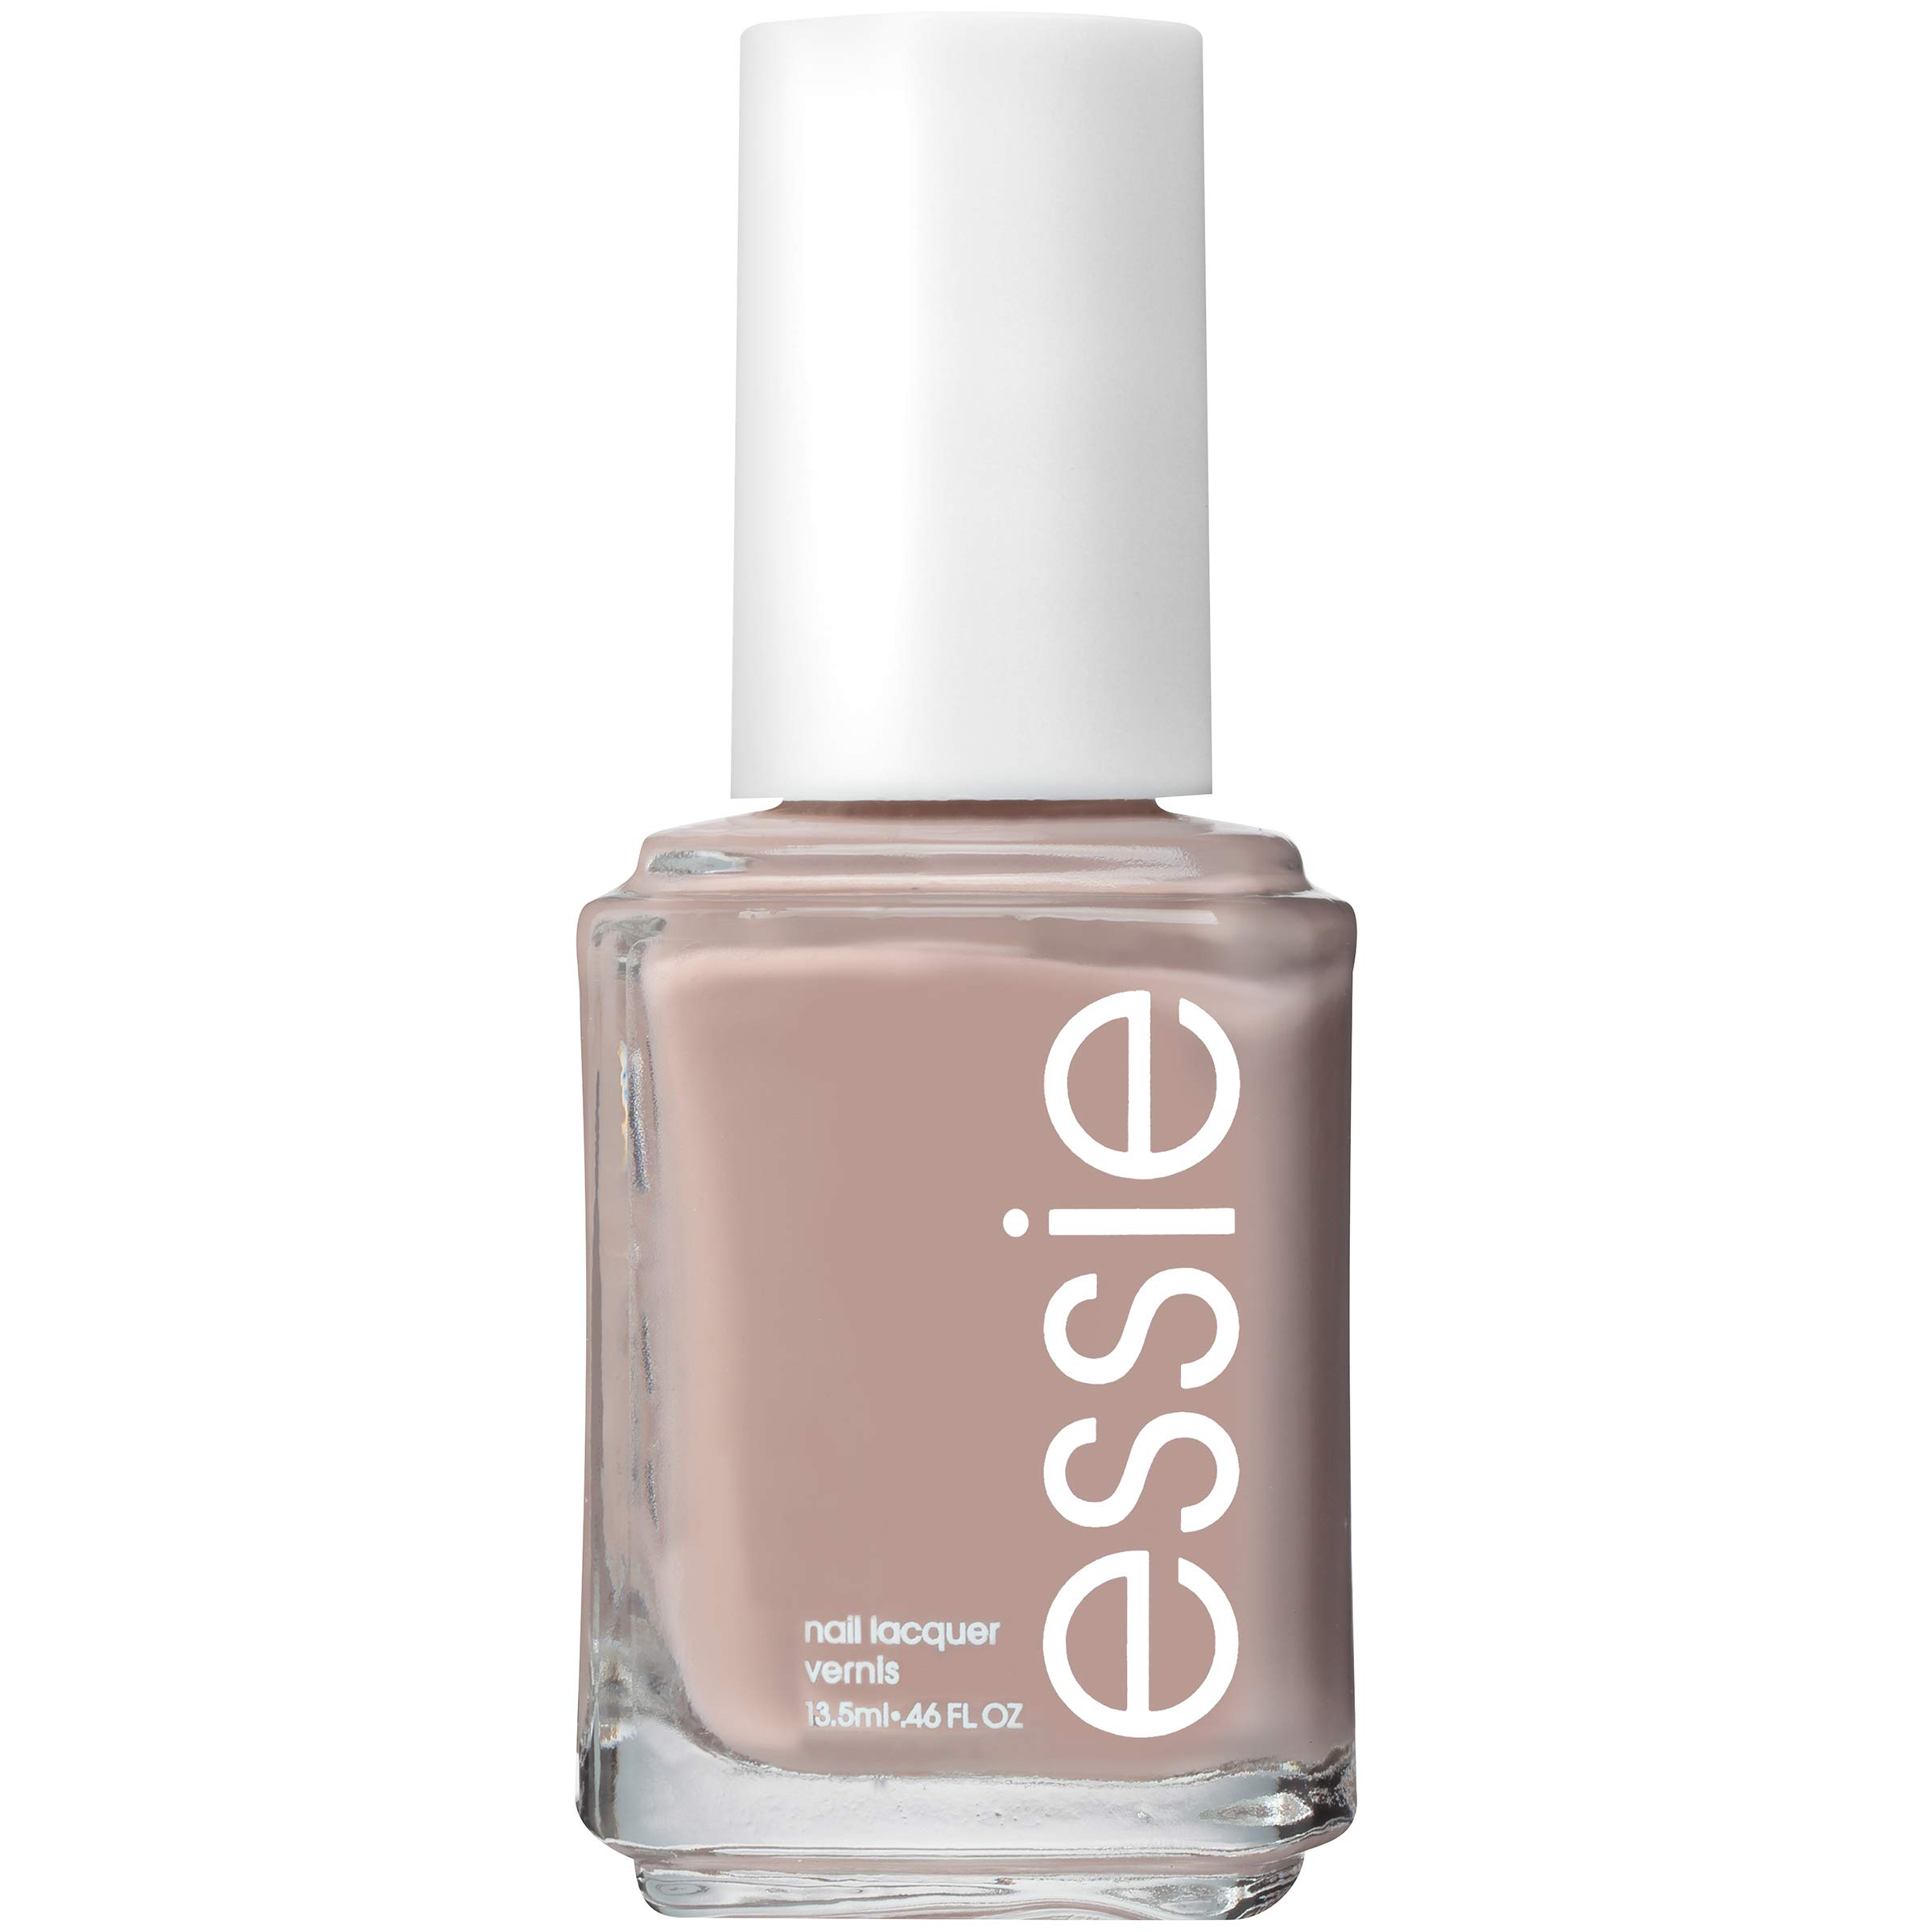 Amazon.com: essie Nail Polish Color, Perennial Chic, 0.46